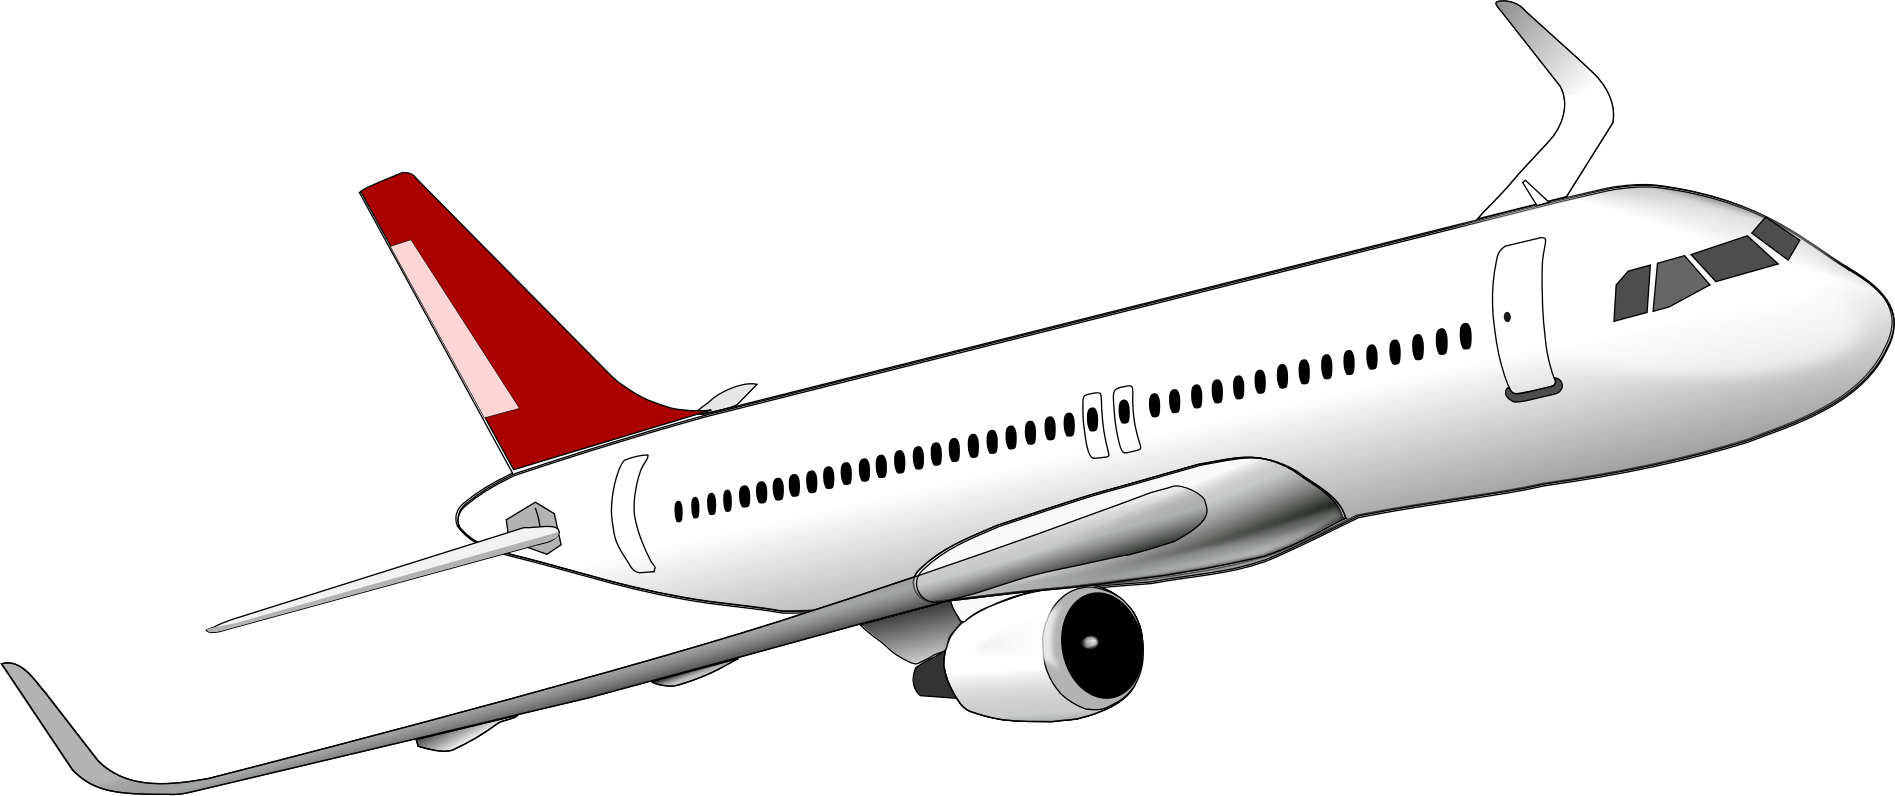 Aircraft vector clip art. Airplane picture black